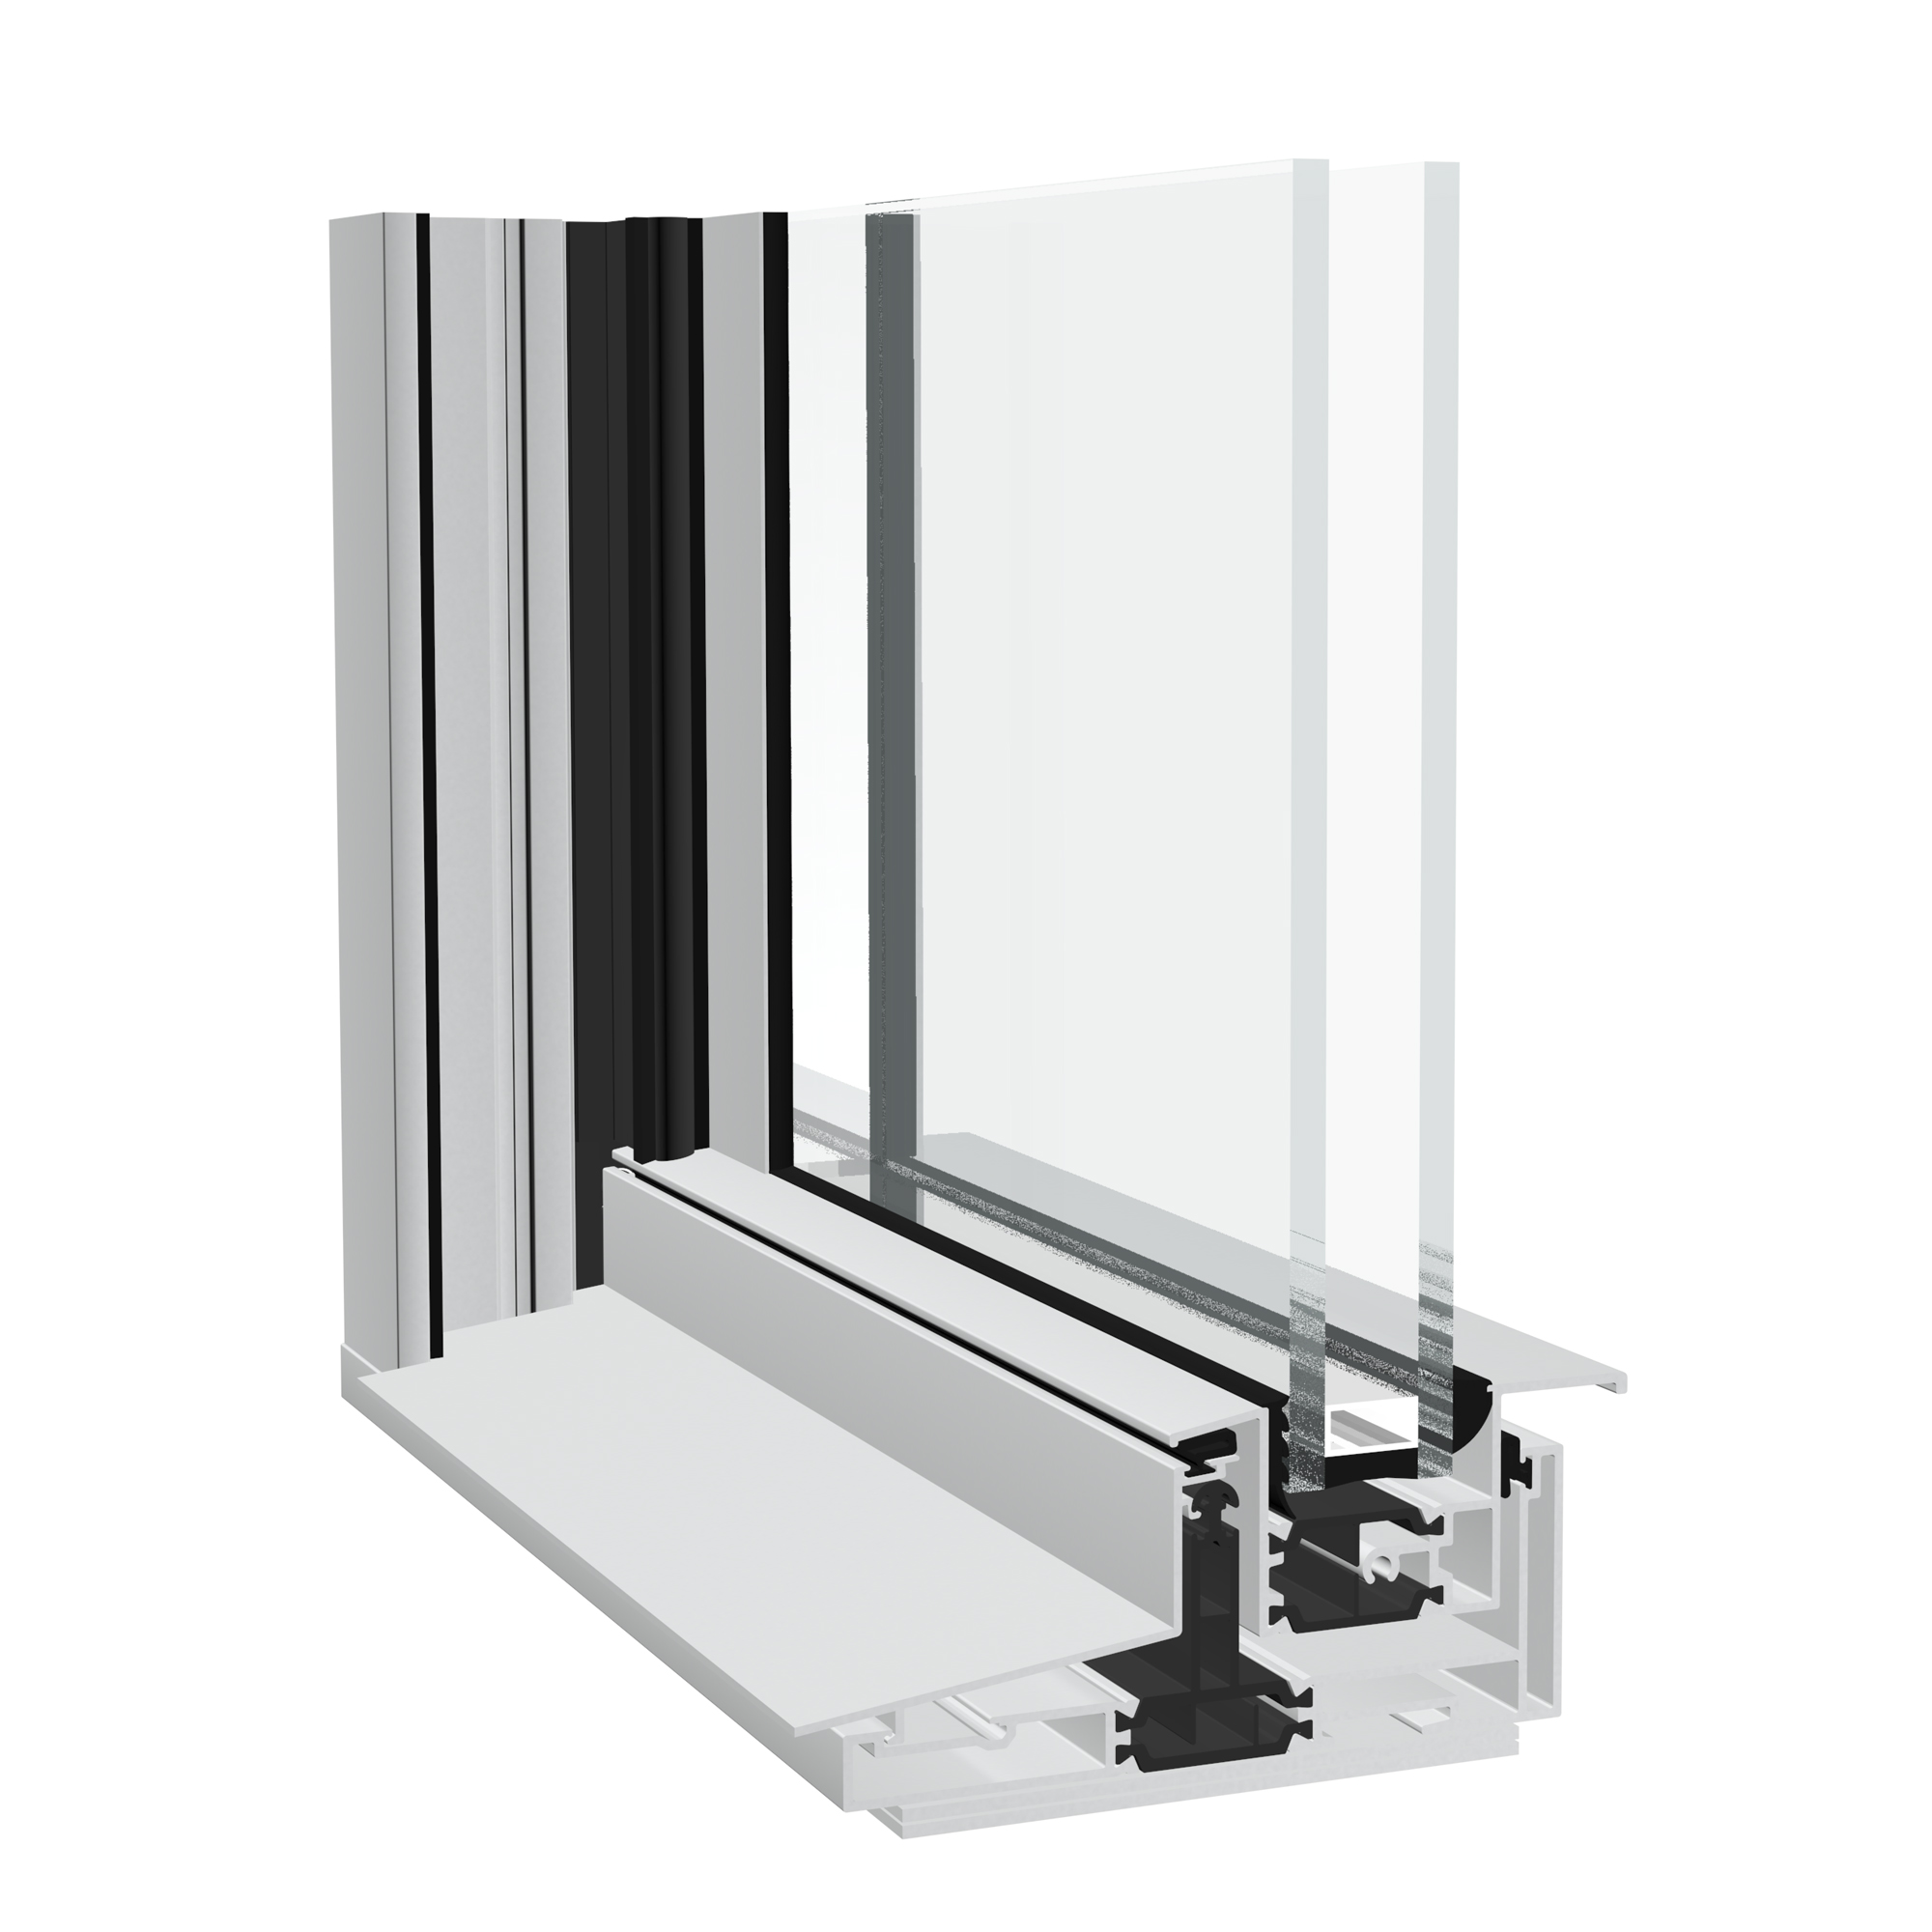 Dualslide aluminium vertical sliding window from Sapa